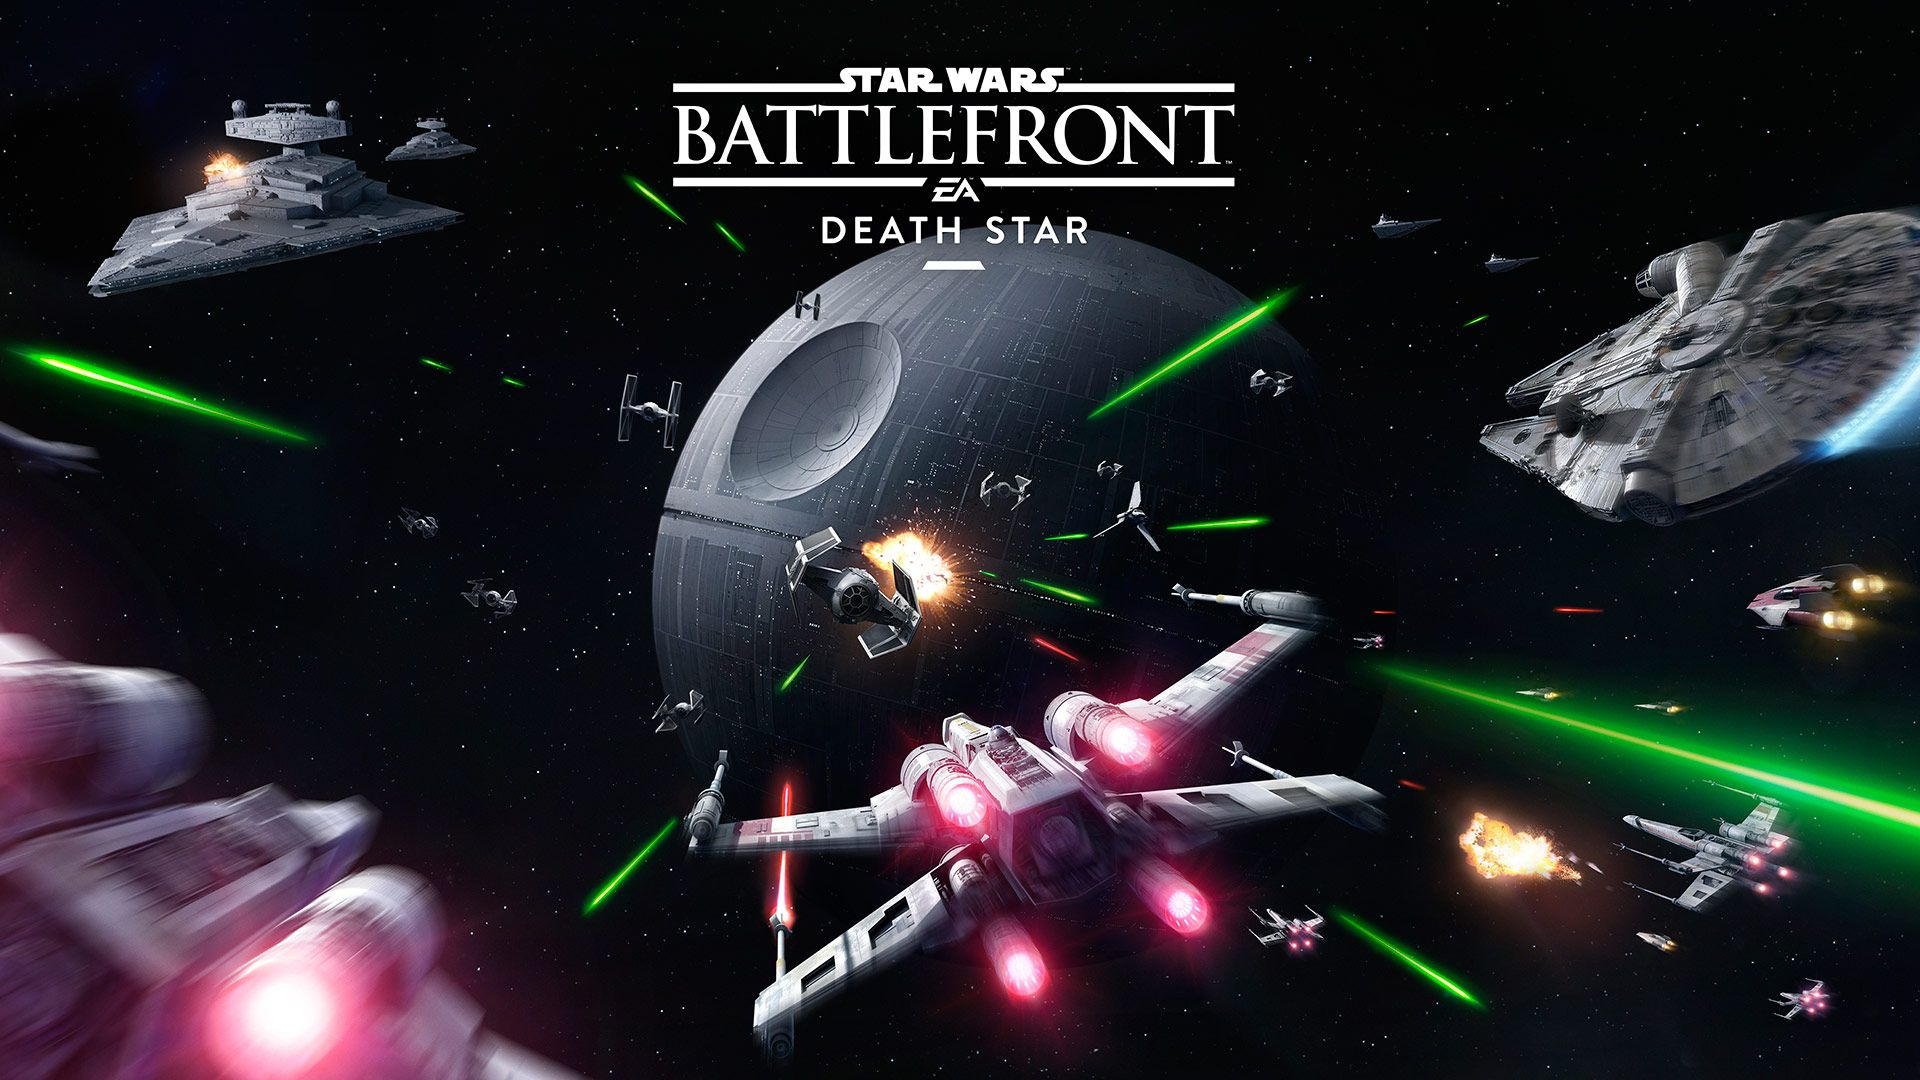 Star Wars: Battlefront Star Wars Battlefront 2